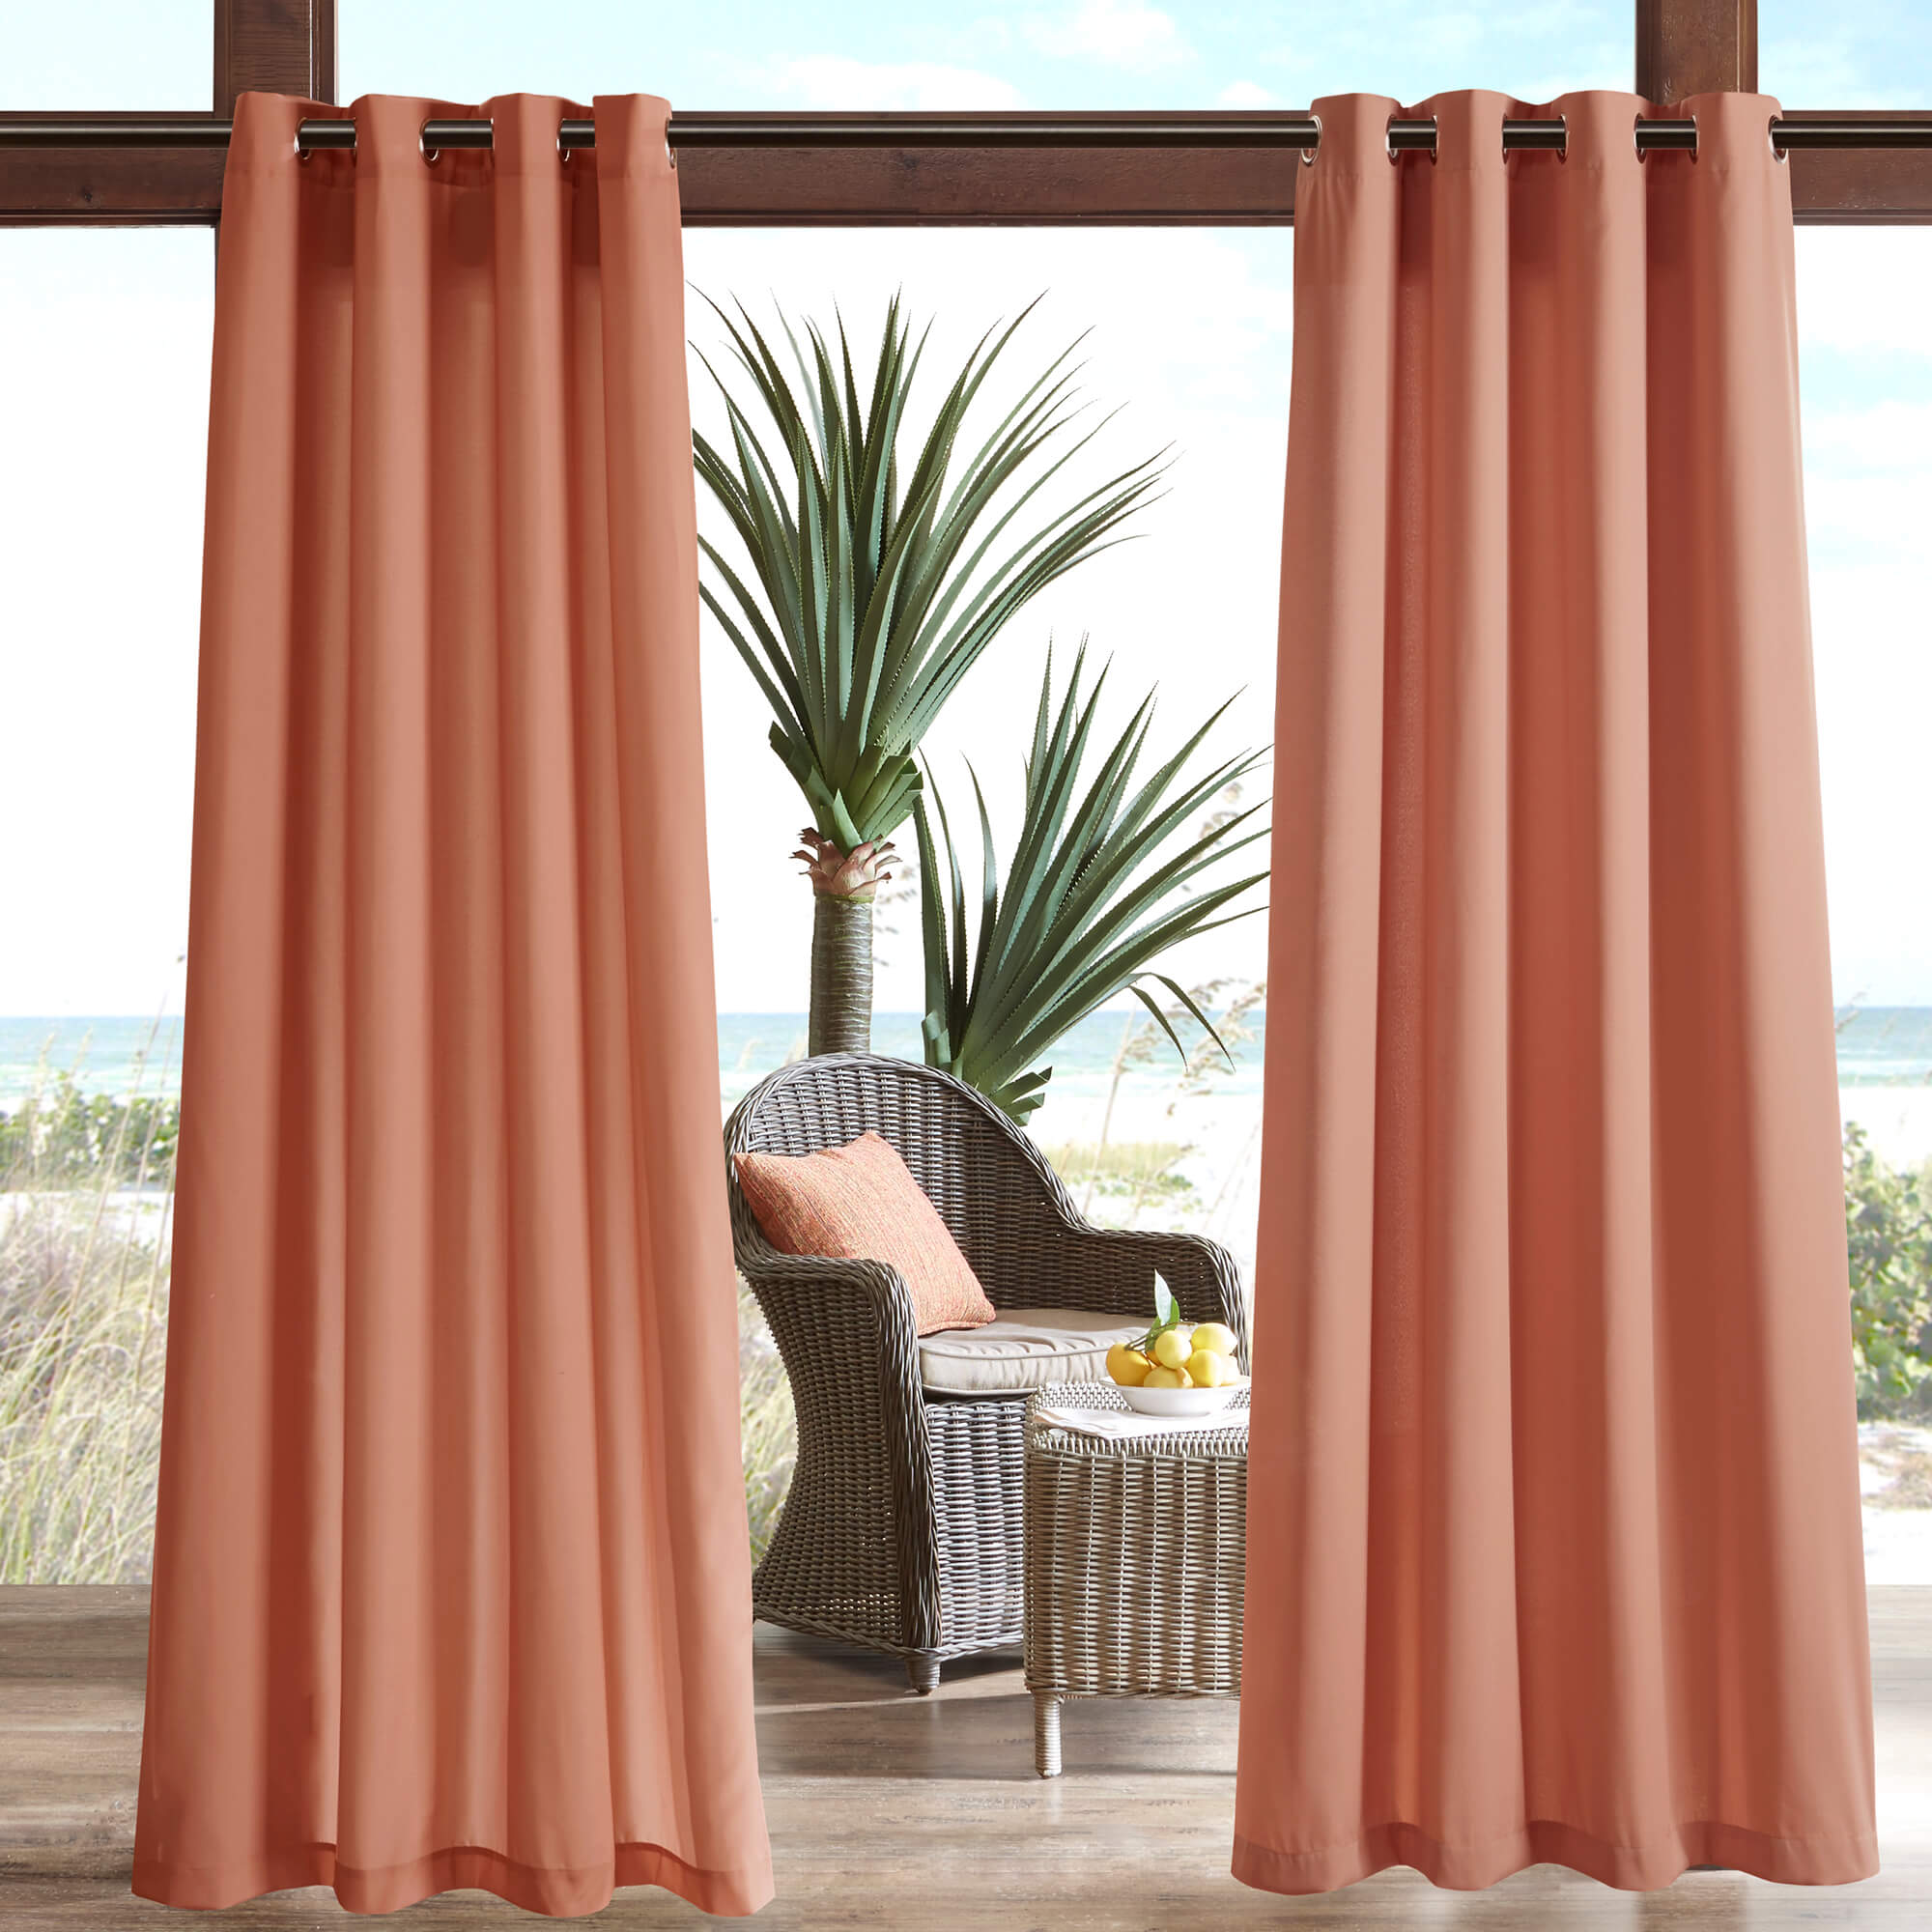 LONG LASTING OUTDOOR CURTAINS FOR PATIO